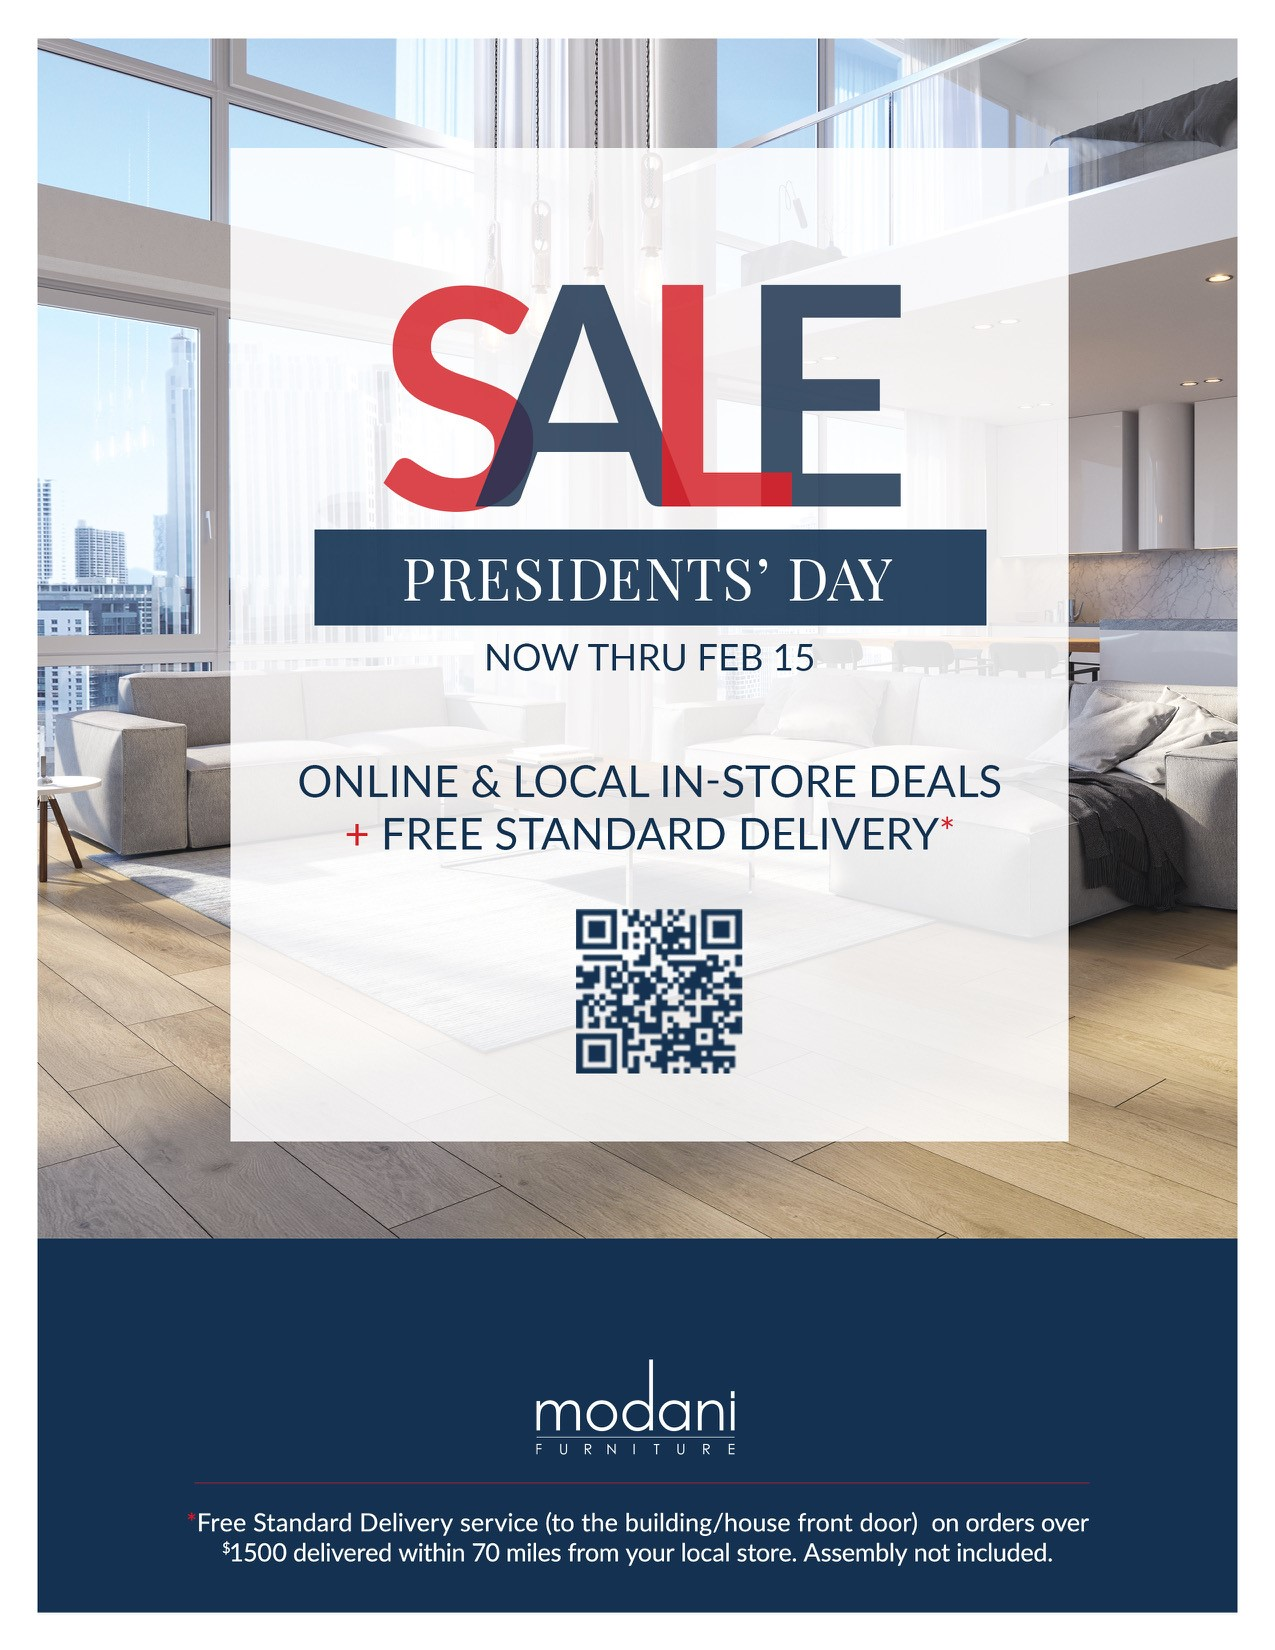 Modani Furniture Showcase for Presidents' Day Sale